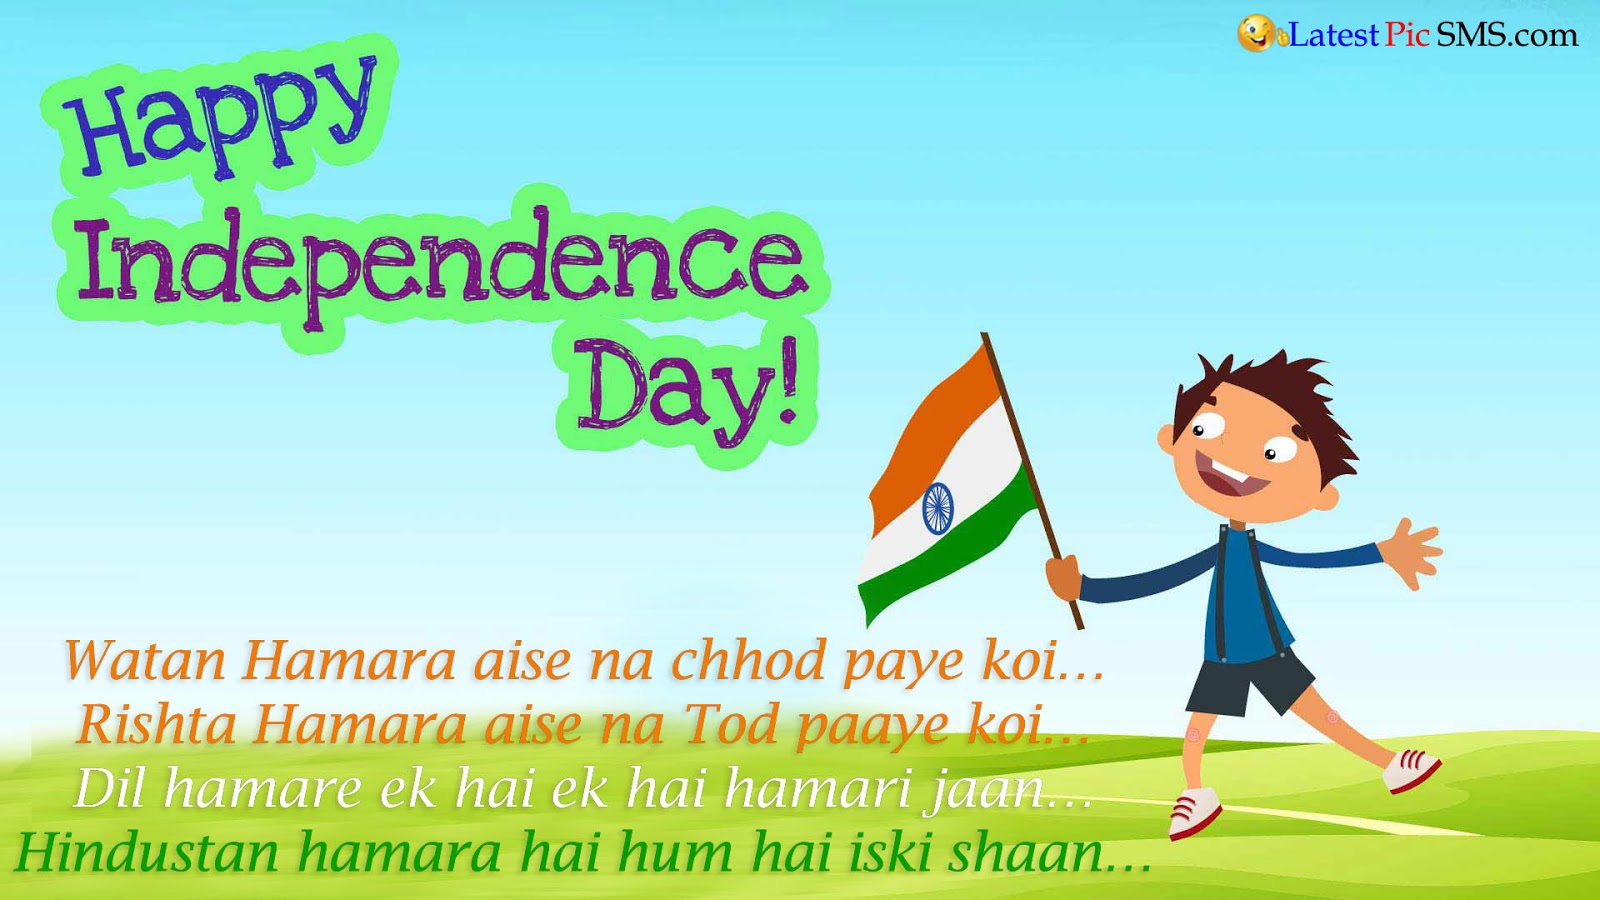 Indian Independence Day Desktop HD Wallpapers - The Celebration of Independence Day of India for Whatsapp & Facebook